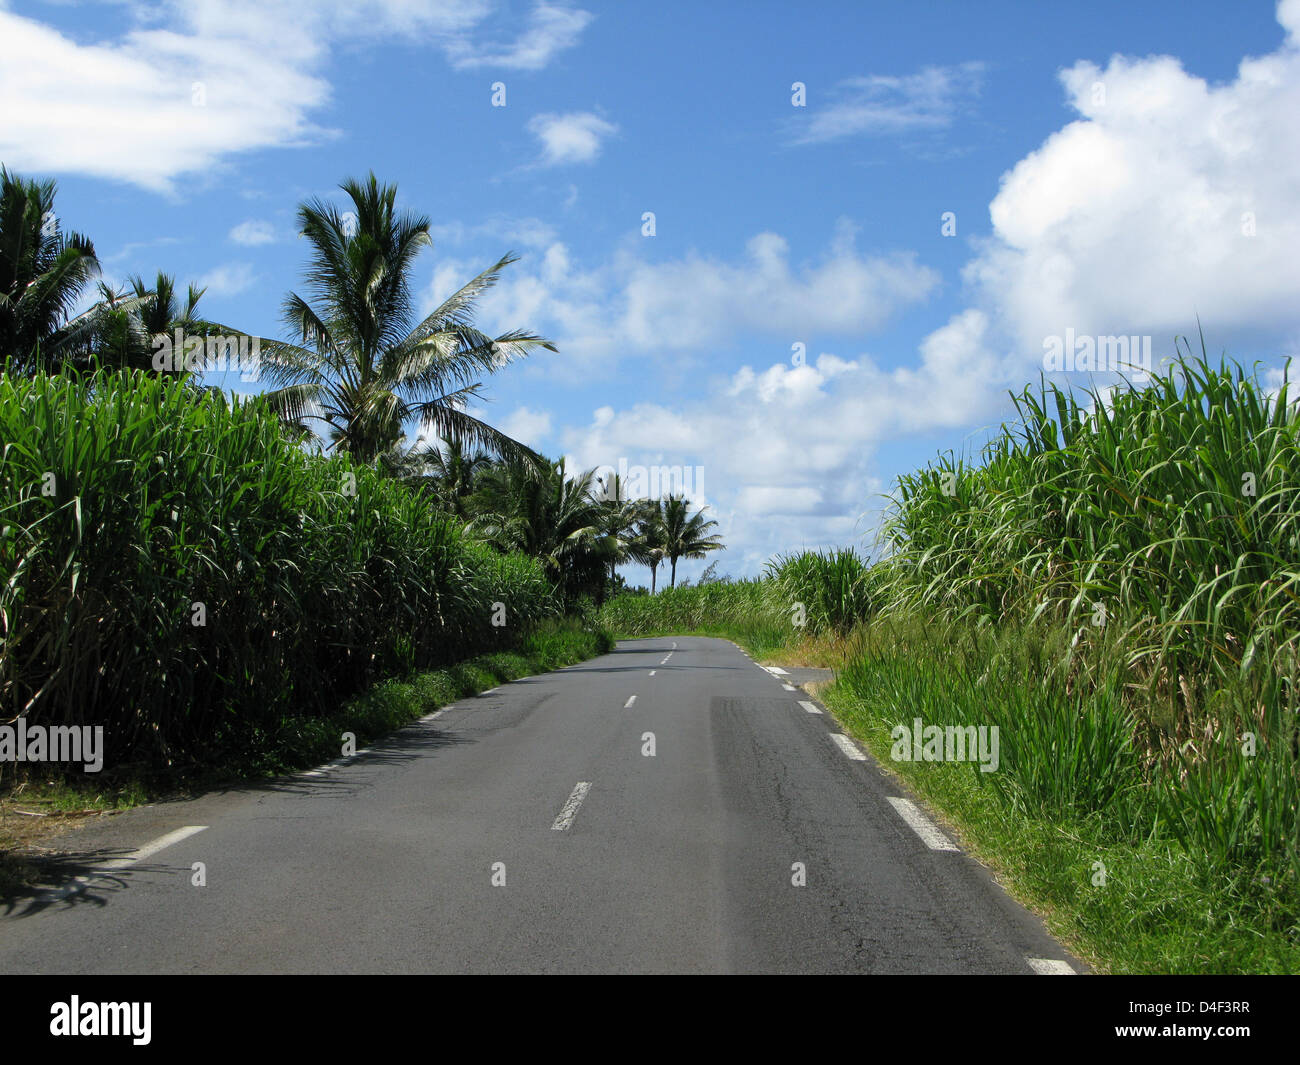 A typical rural road next to sugar cane plantations on La Reunion, France, 15 April 2008. Sugar cane is an important - Stock Image